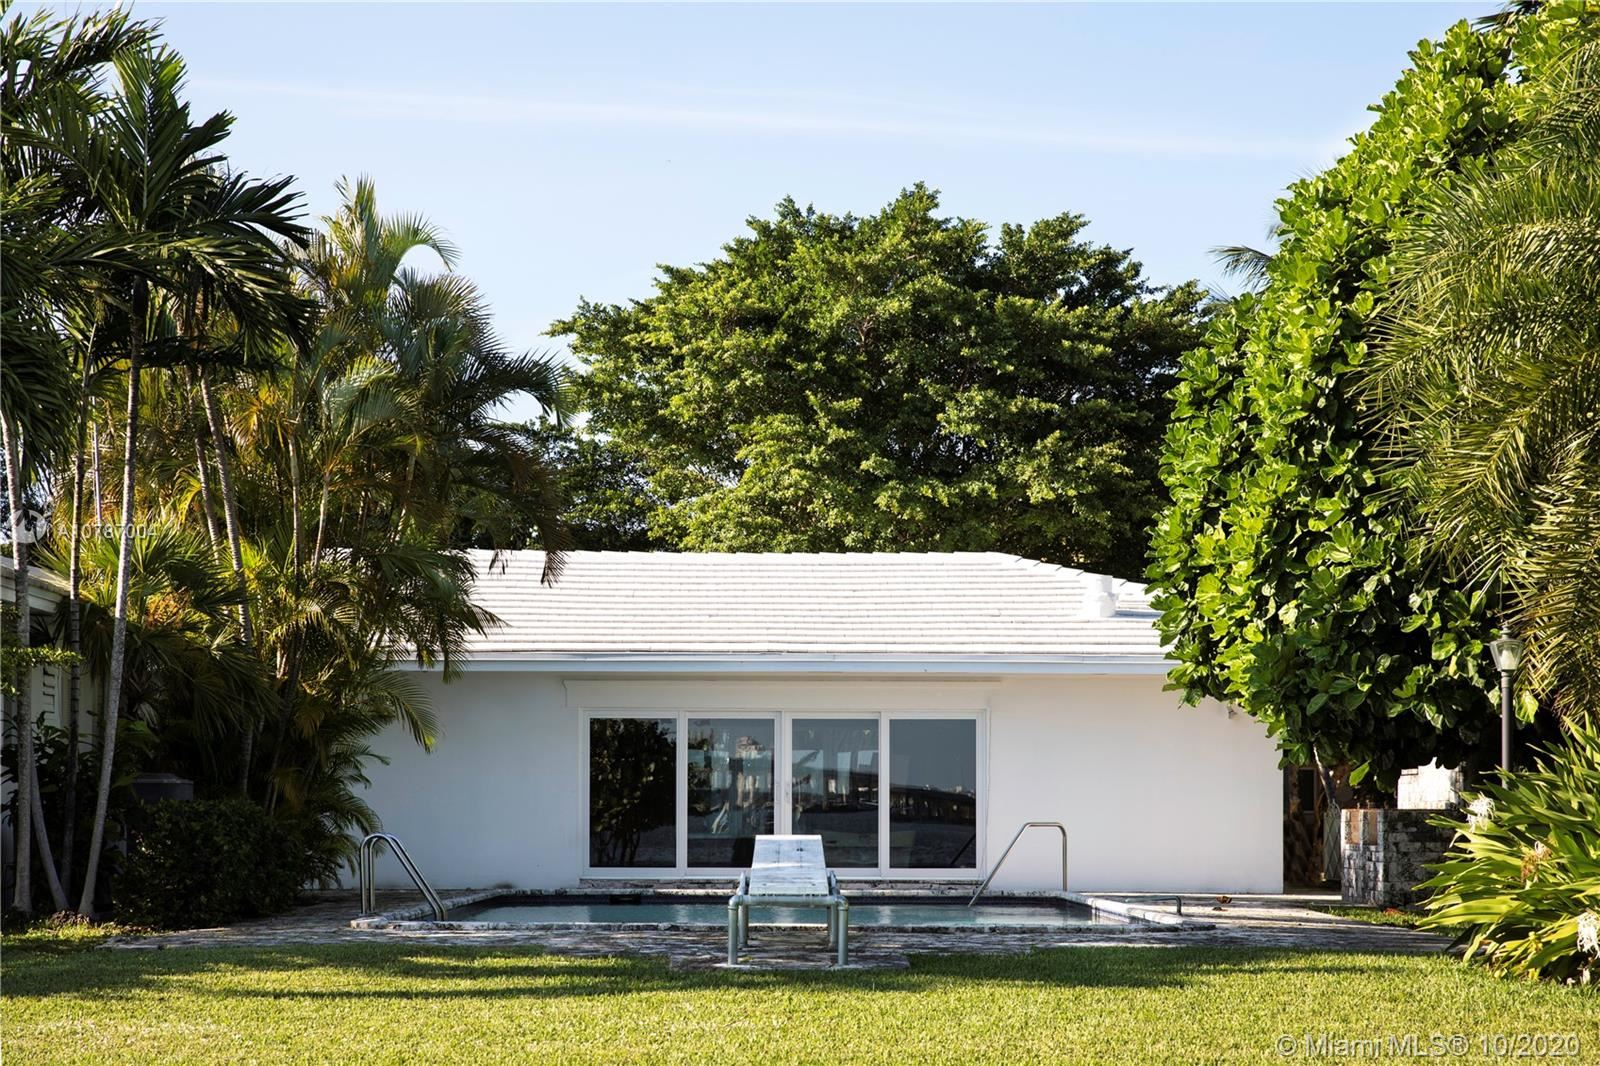 Photo 13 of Listing MLS a10787004 in 4355 Sabal Palm Rd Miami FL 33137